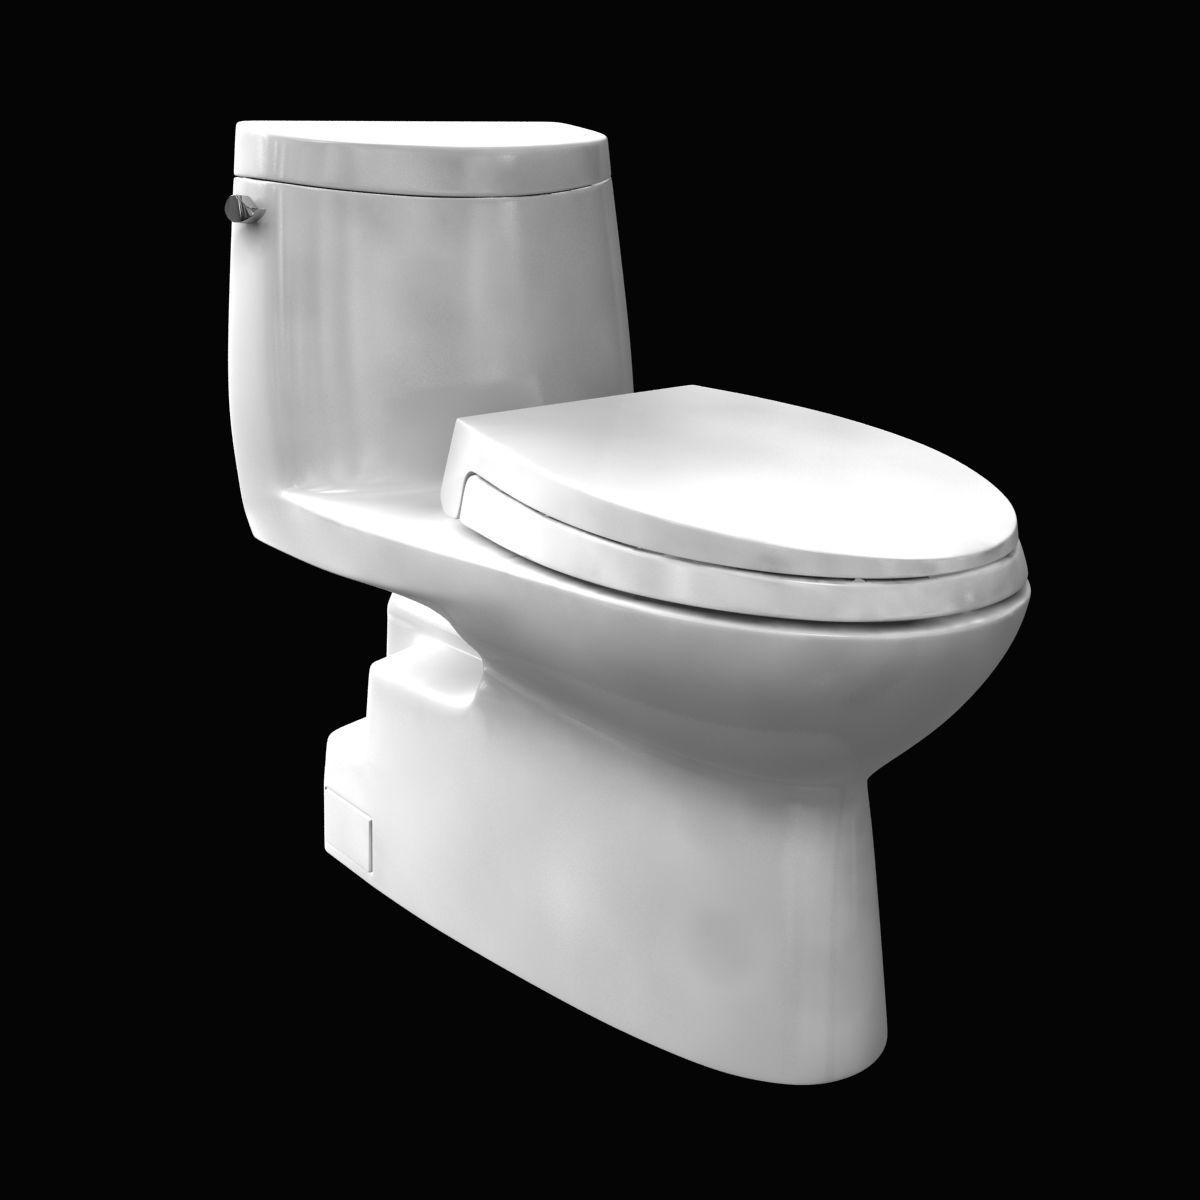 3D model toto Carlyle II One-Piece Toilet GPF Elongated